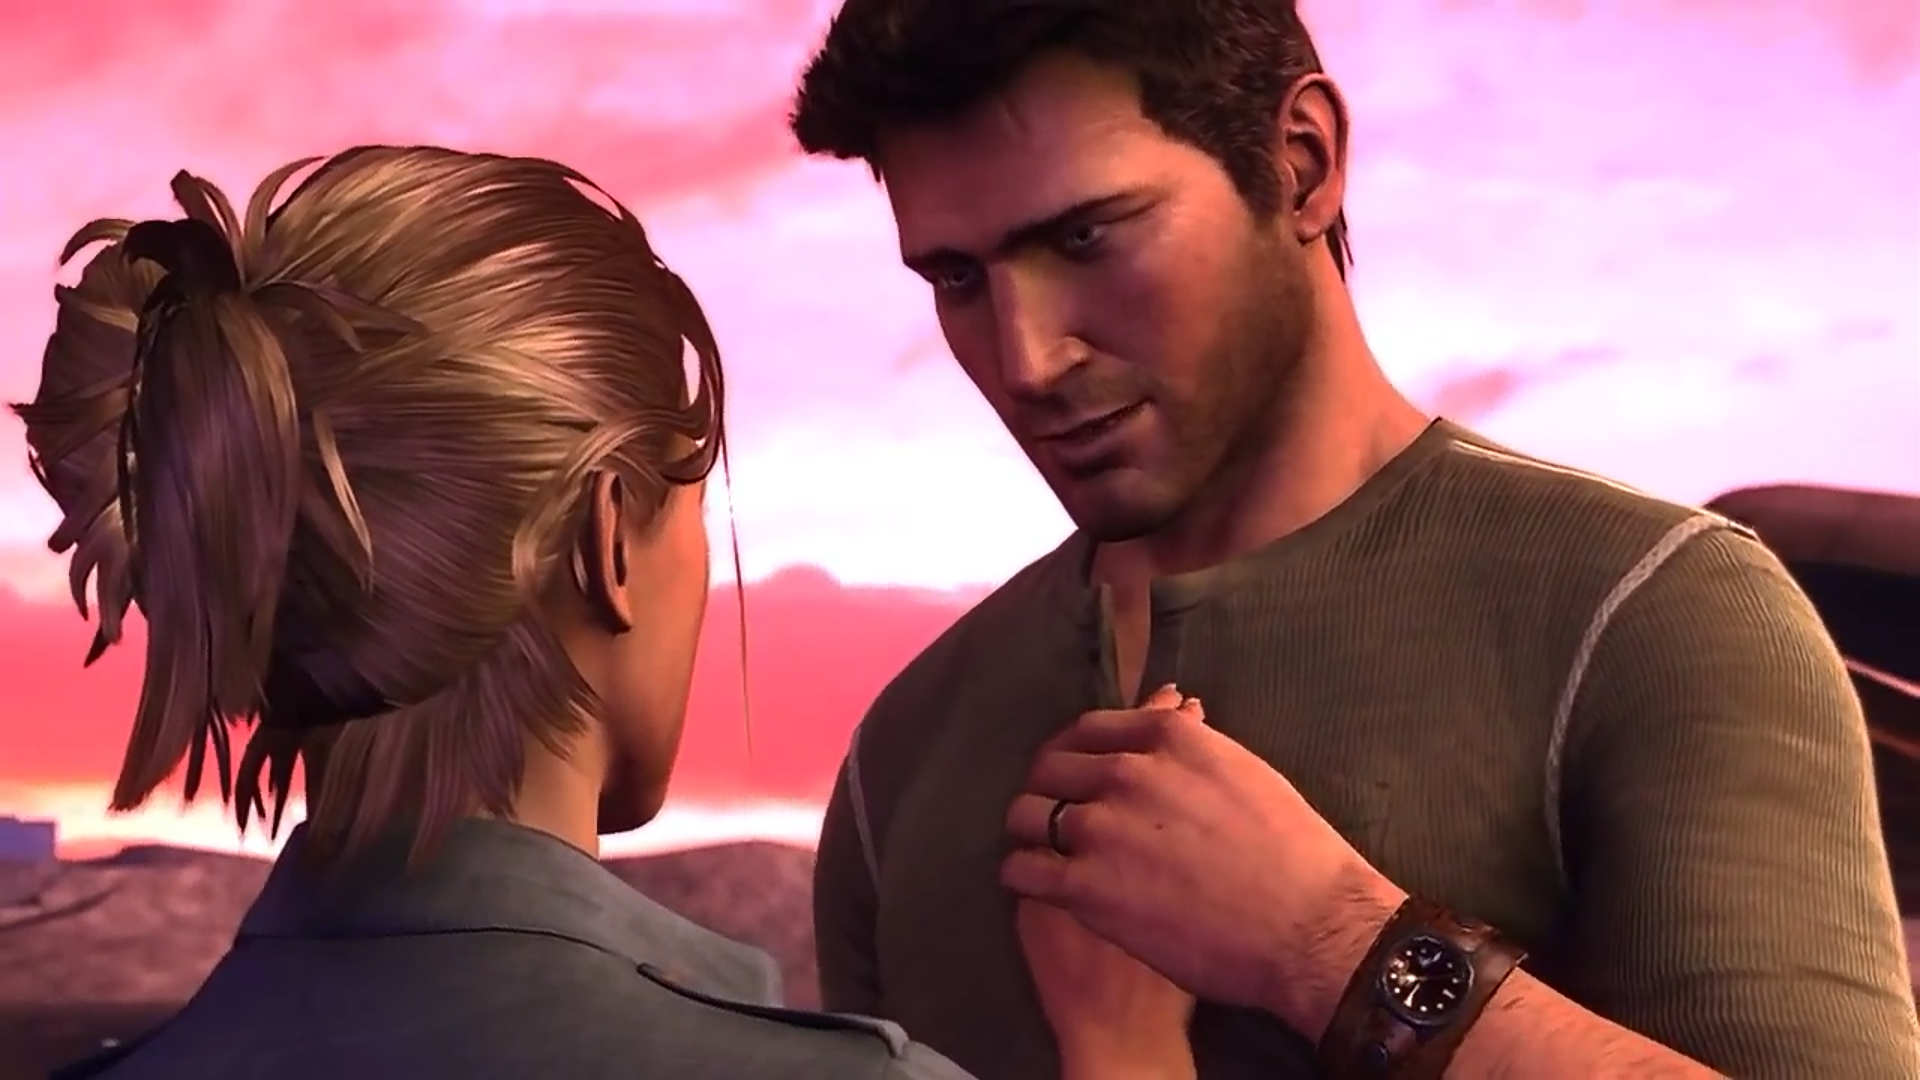 Nathan Drake And Elena Fisher The Ross And Rachel Of Gaming